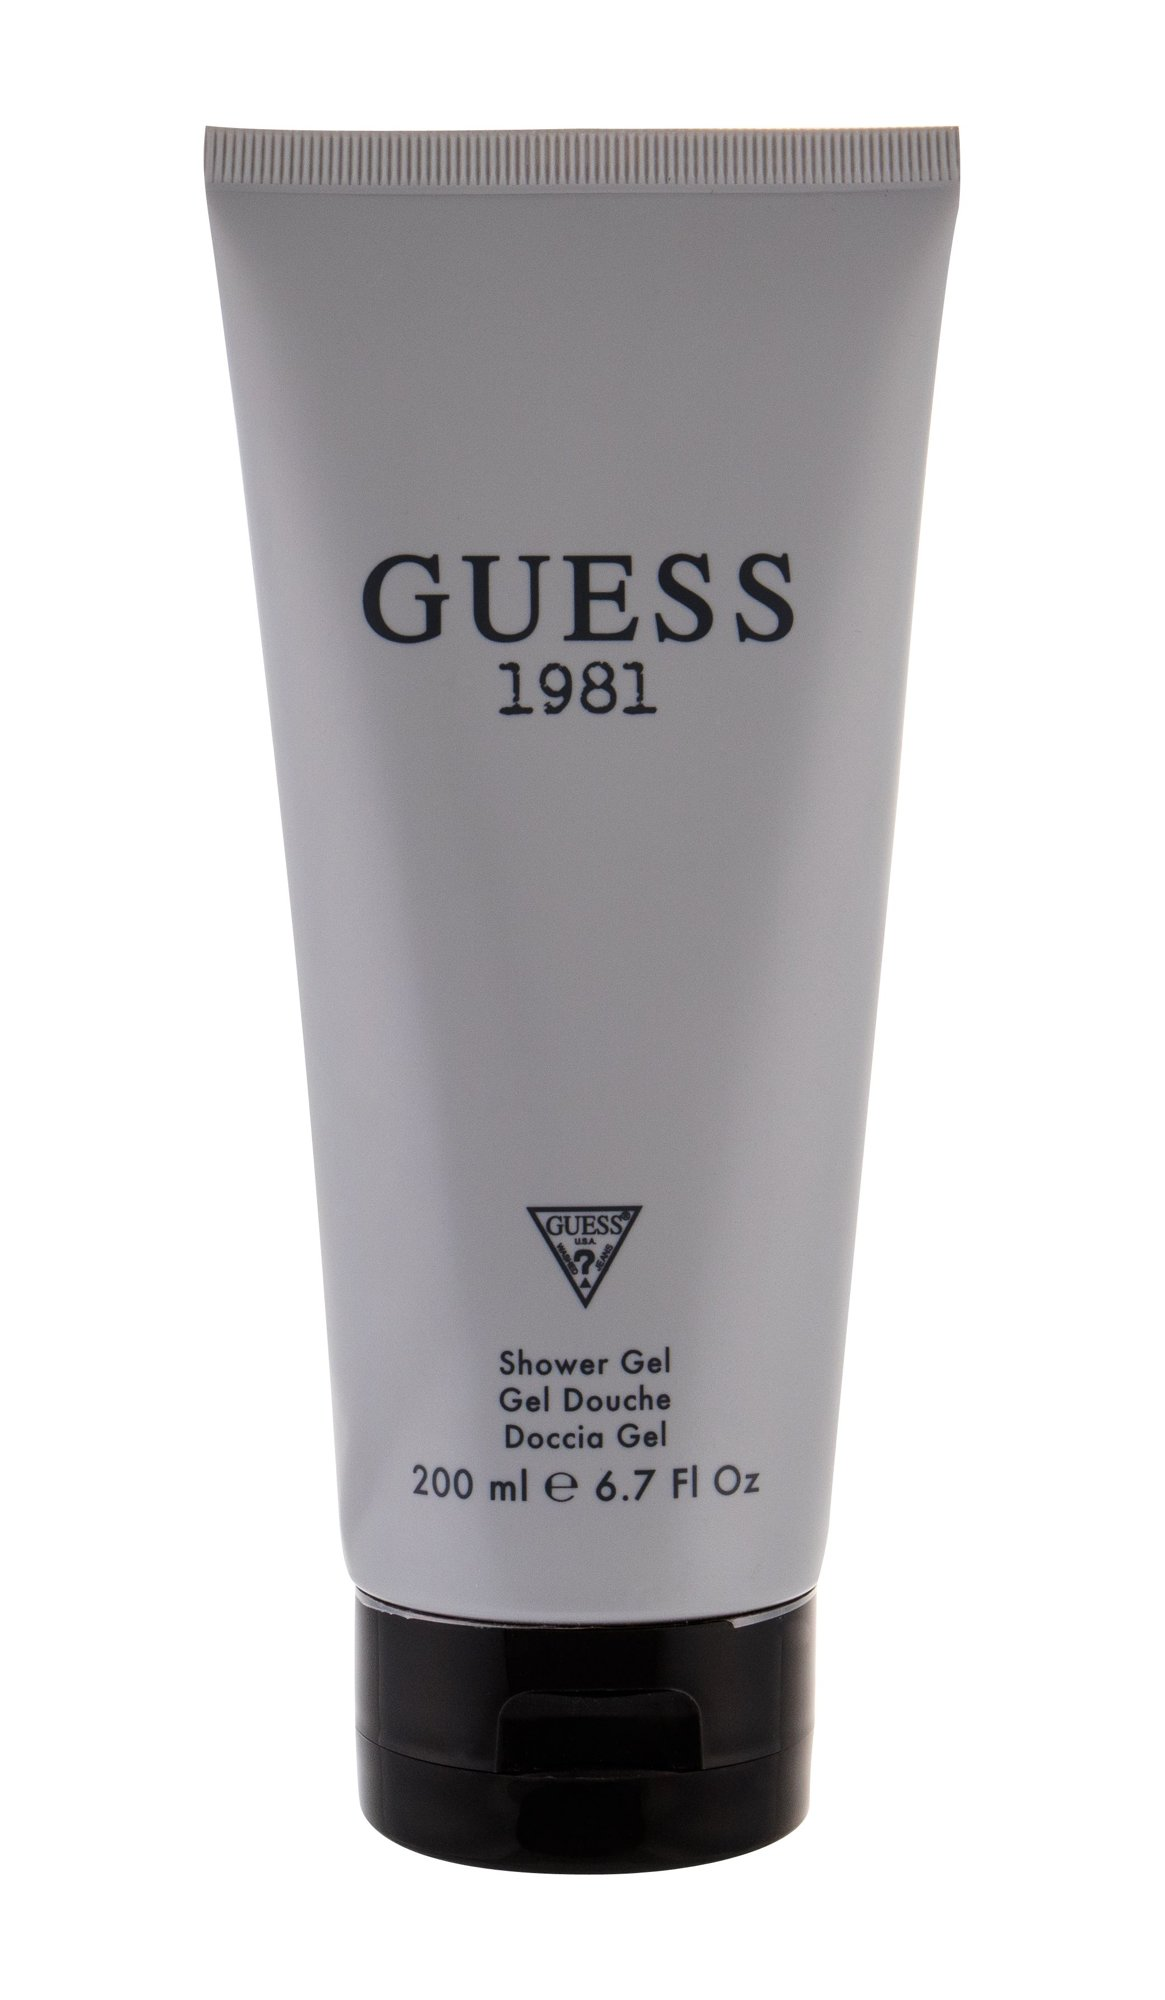 GUESS Guess 1981 Shower Gel 200ml